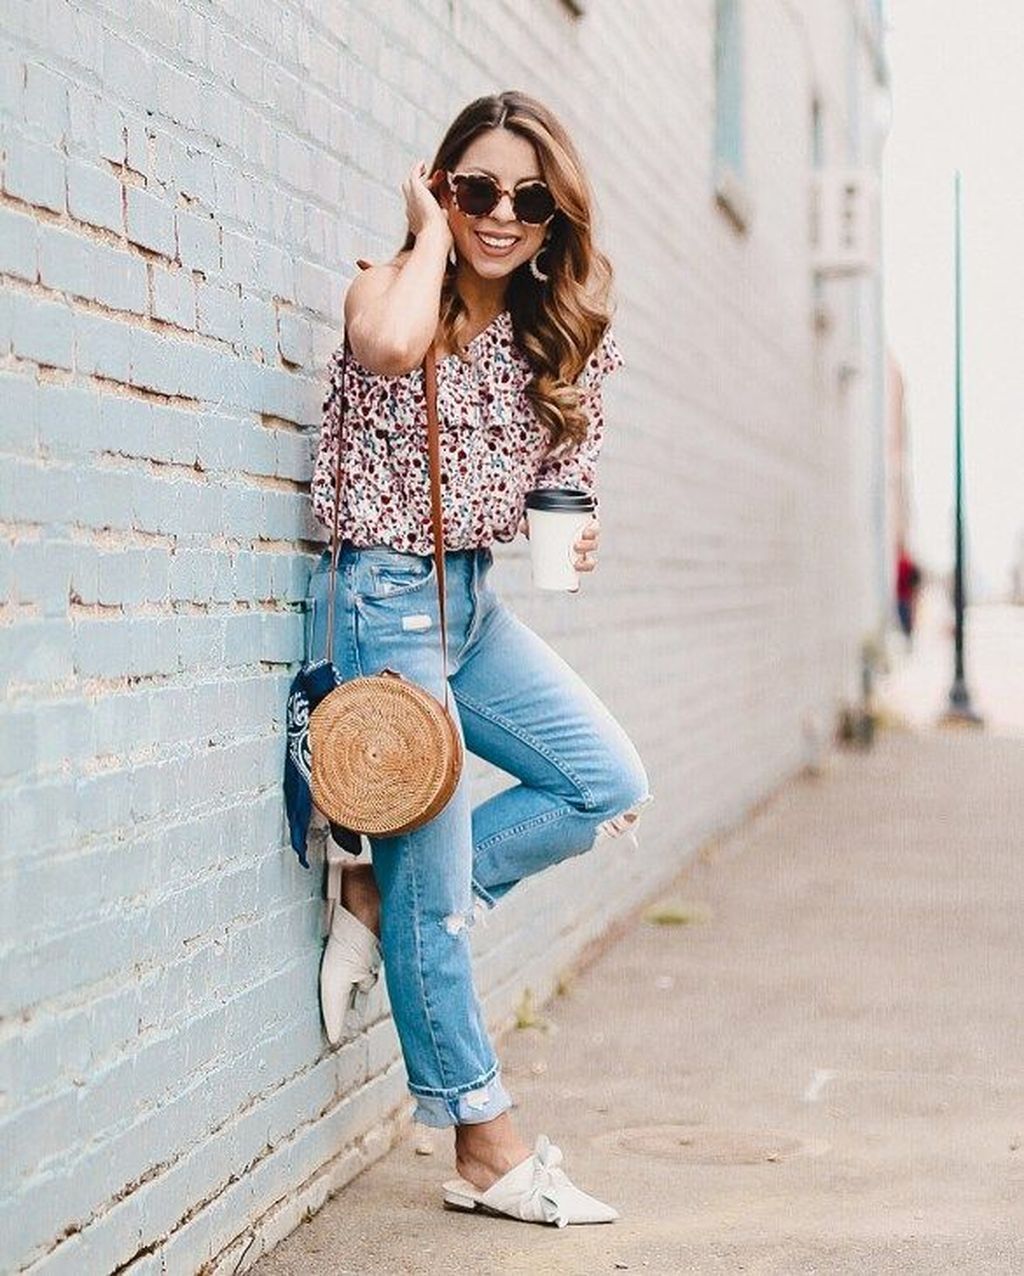 46 Fabulous First Date Outfit Ideas For Women | Date